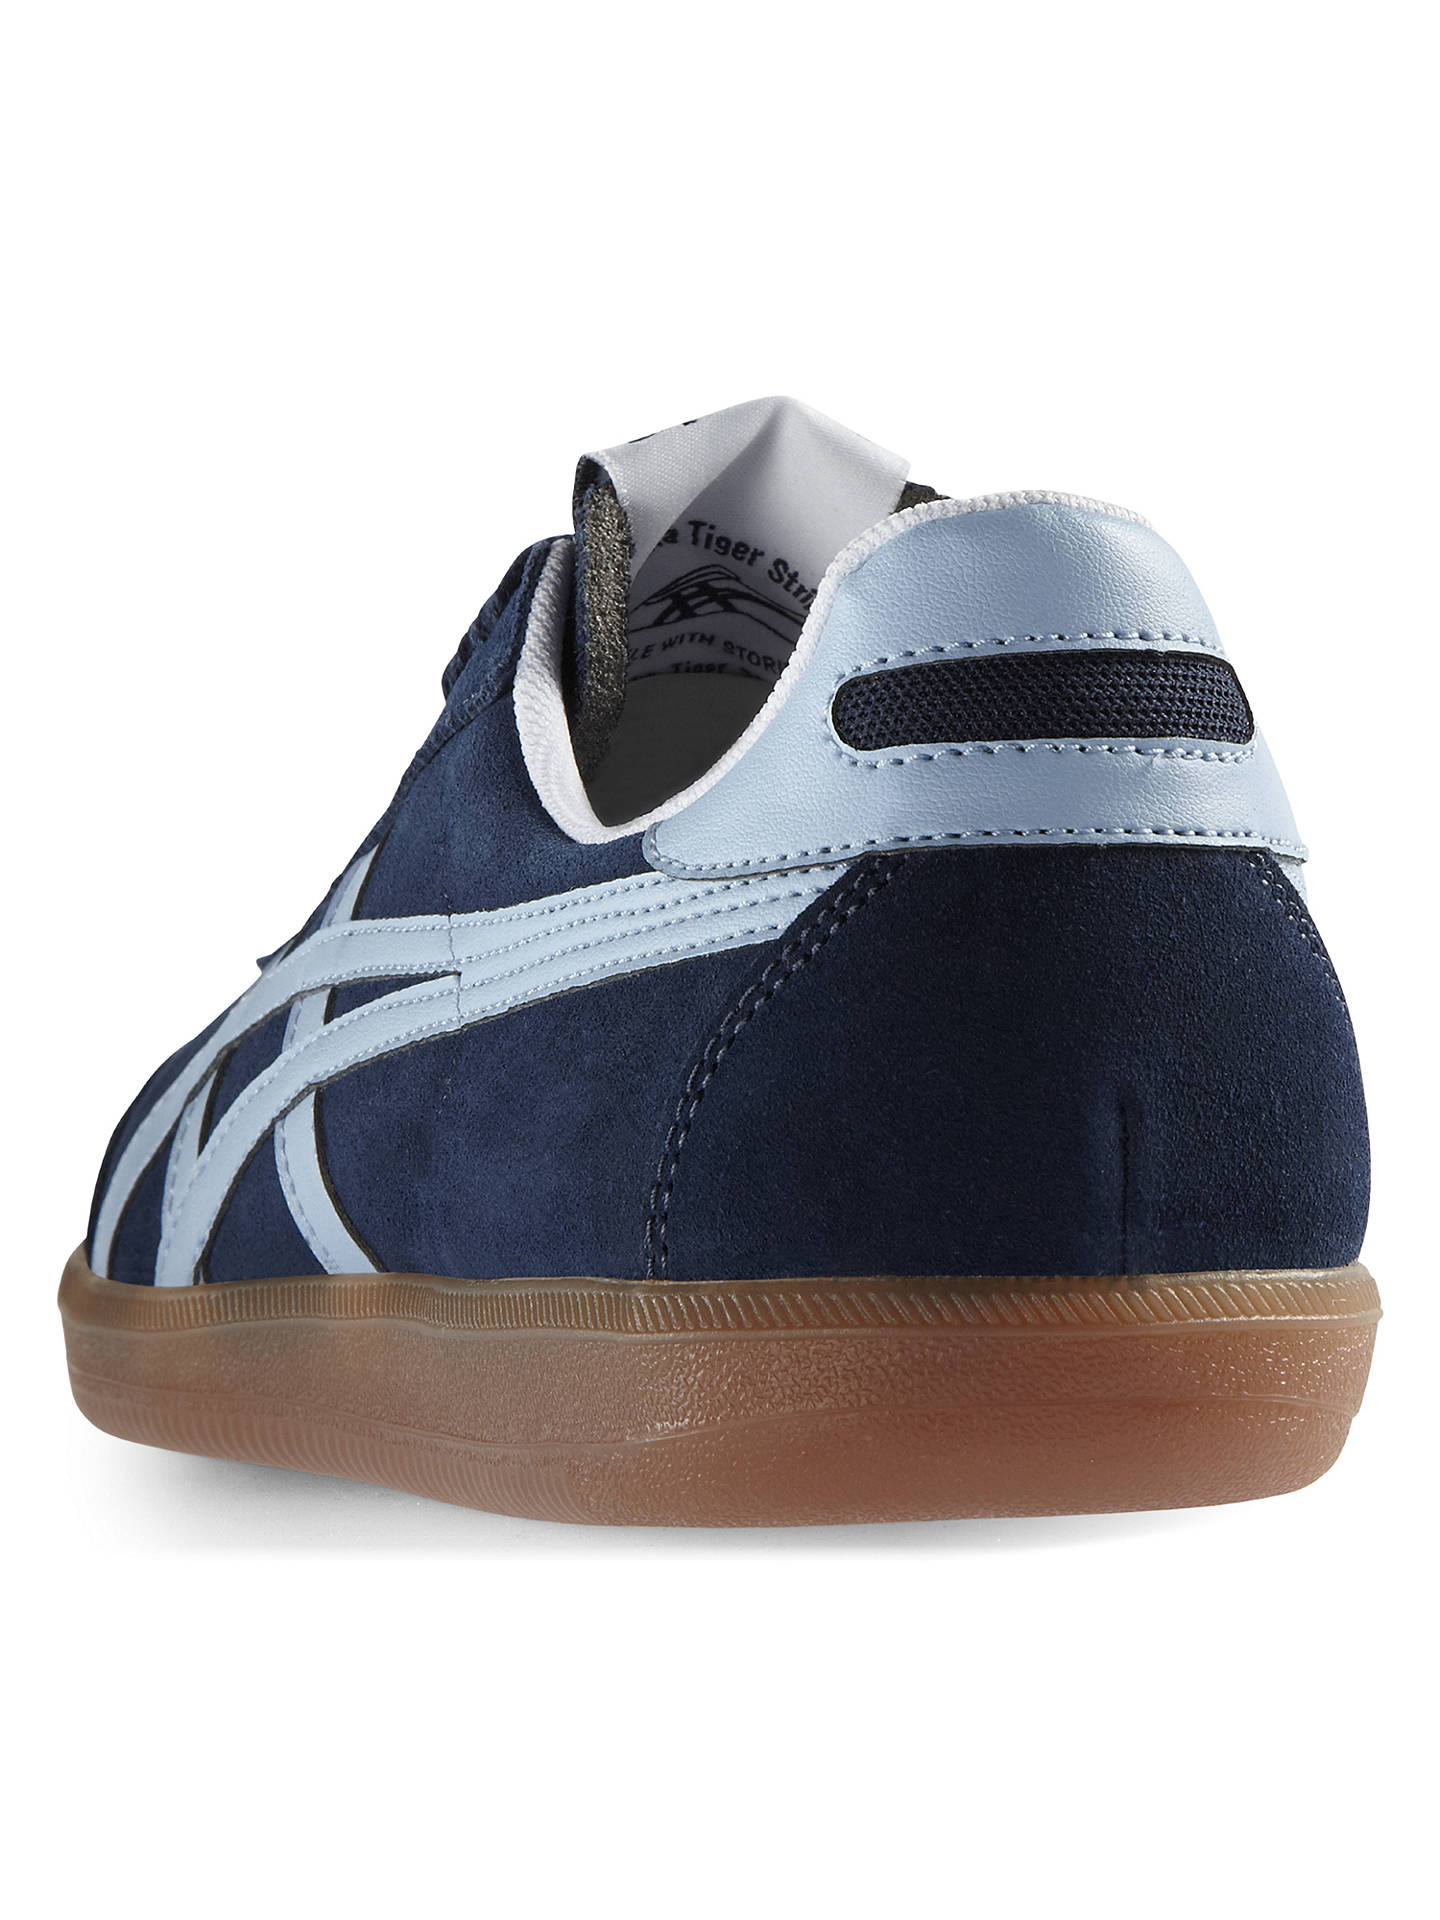 check out 02871 af066 Onitsuka Tiger Tokuten Men's Trainers, Navy at John Lewis ...